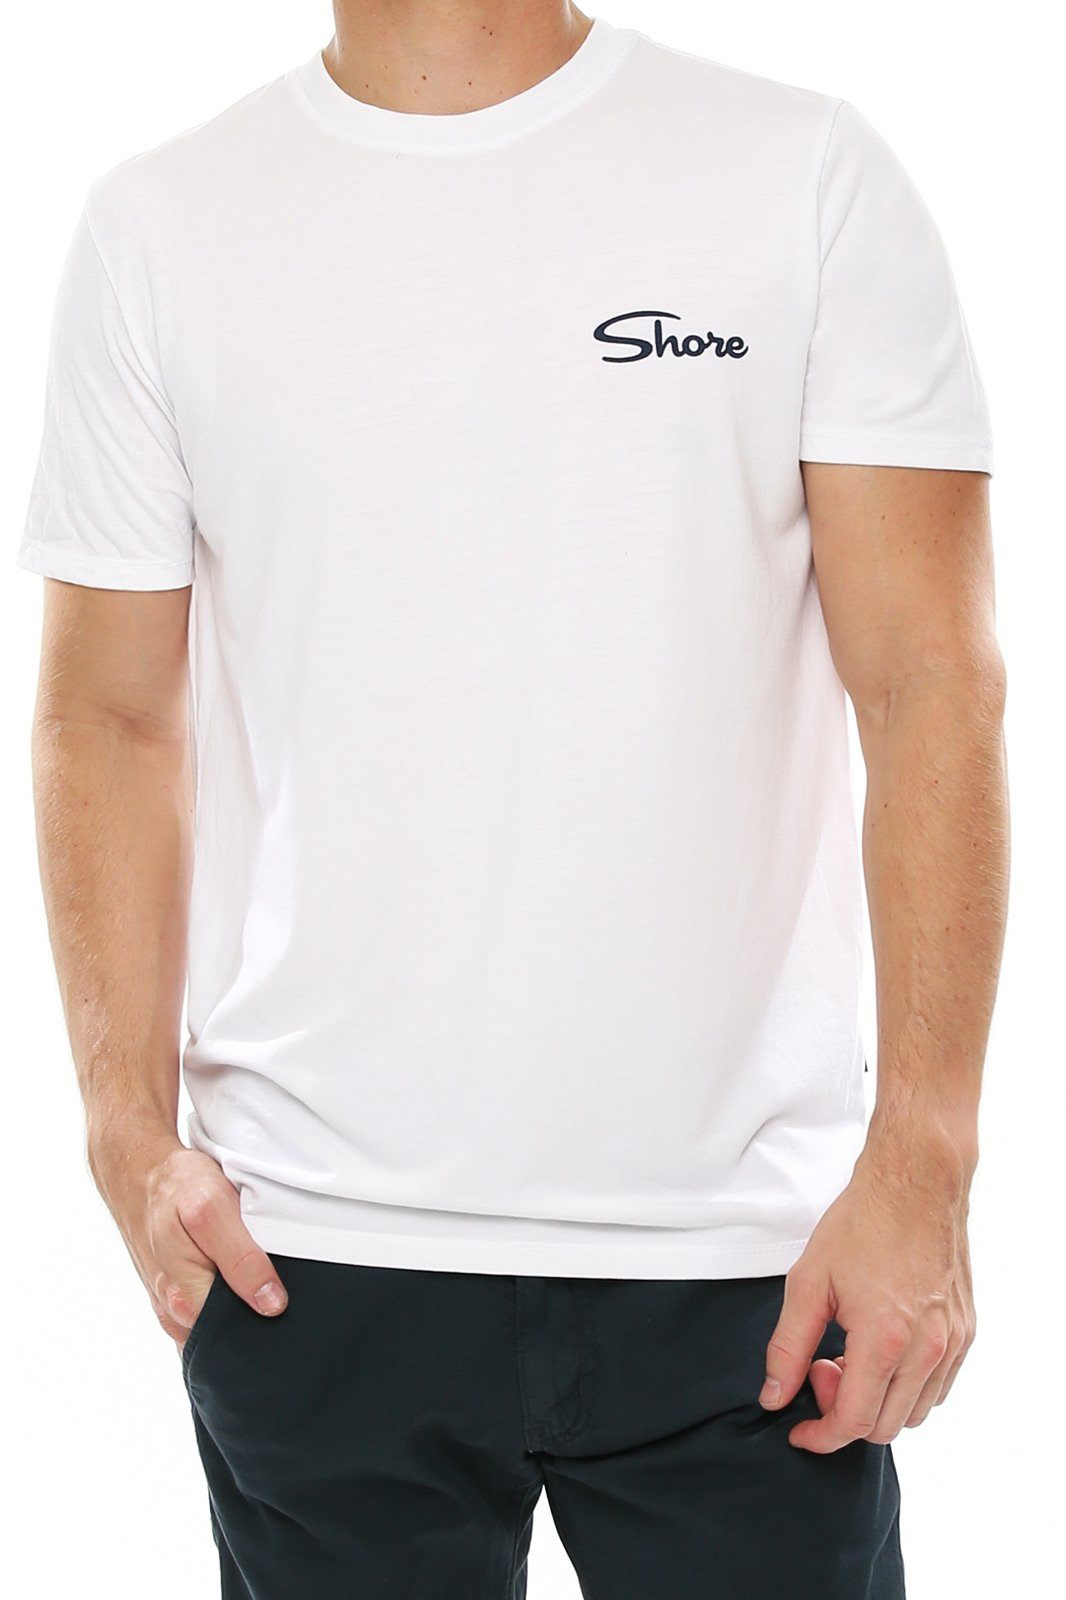 Men's Graphic Crew Tee - Surf - Shore